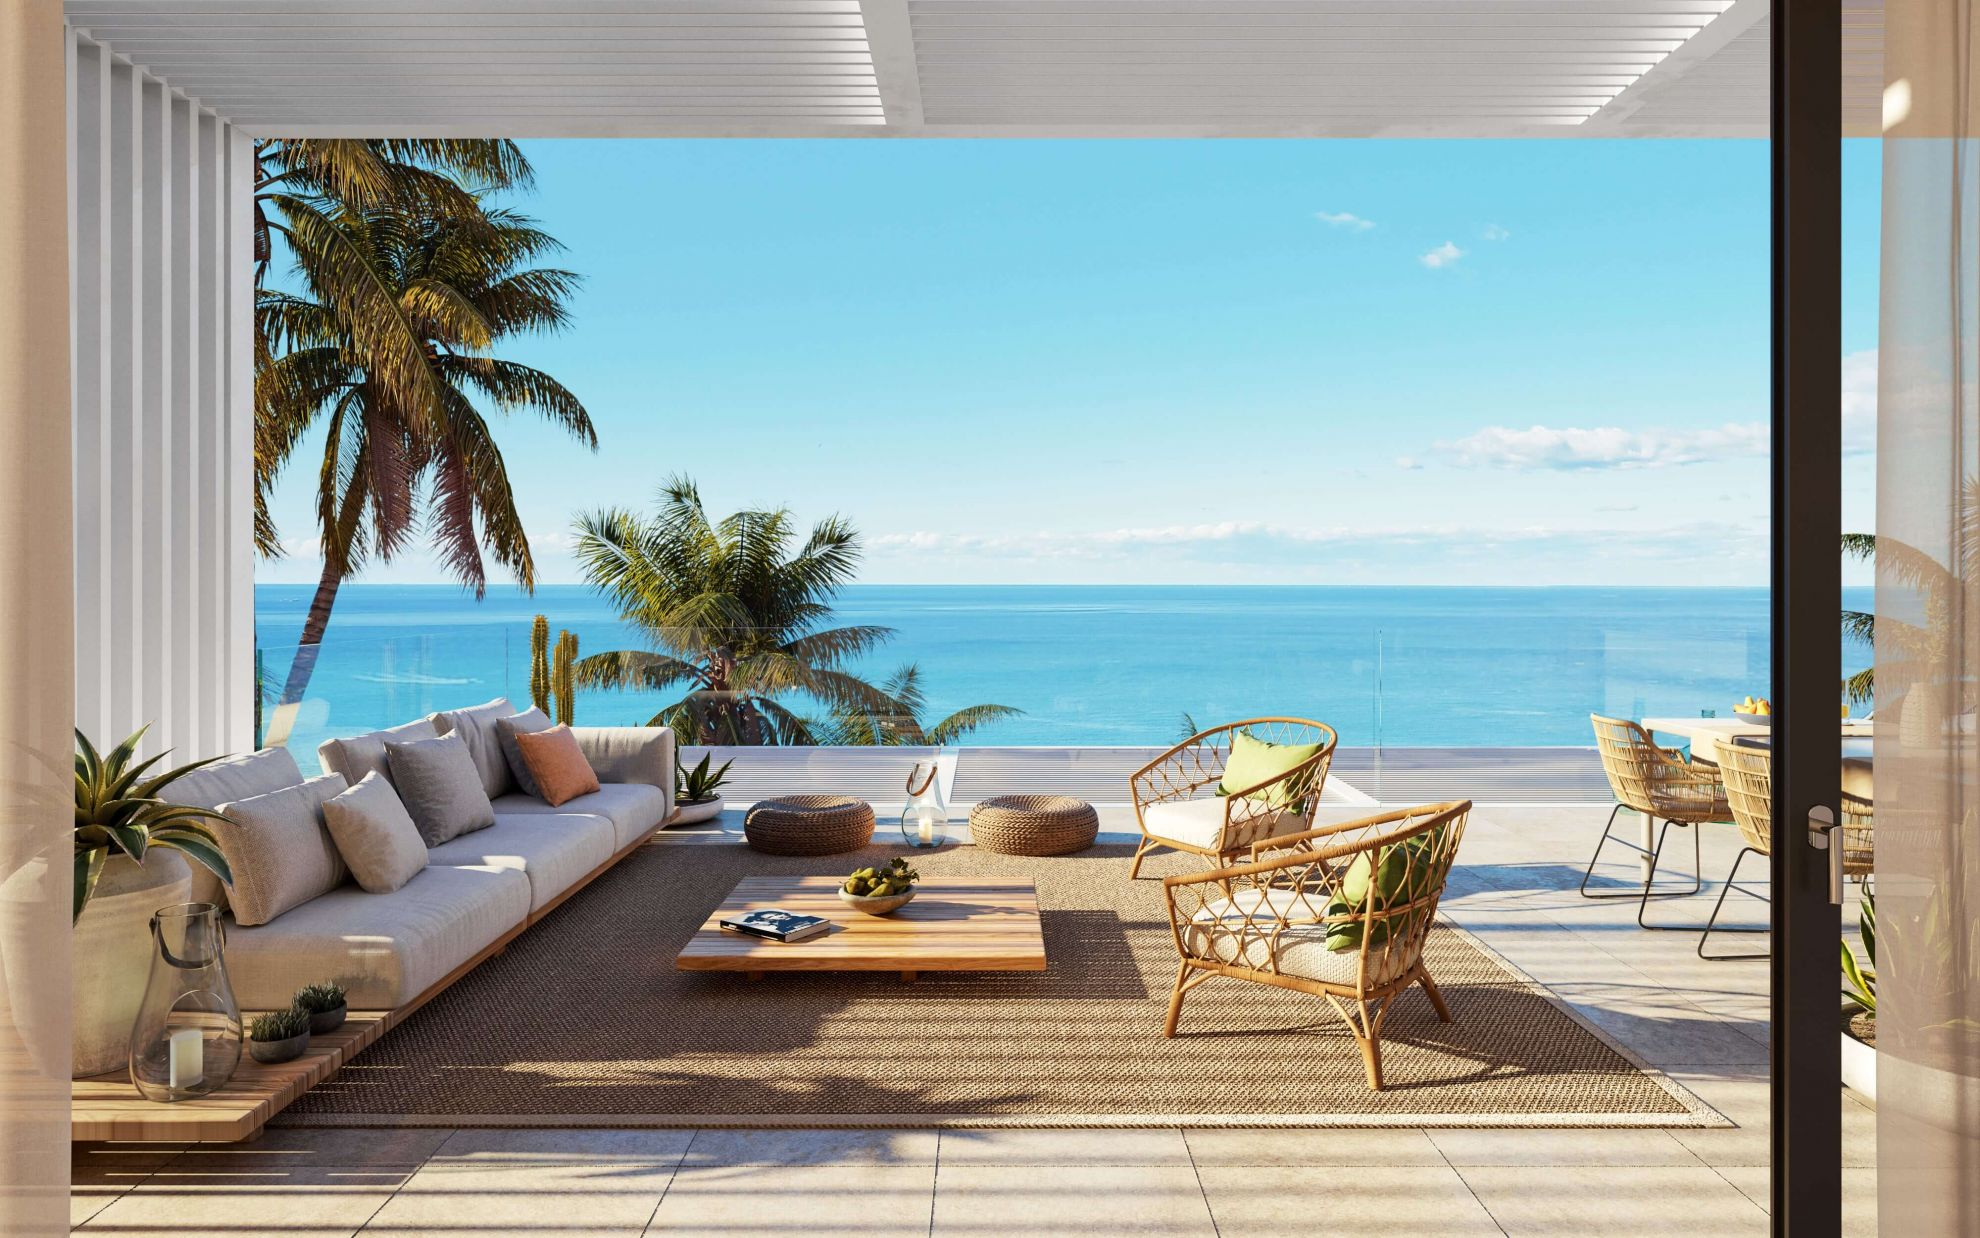 2 and 3 bedroom penthouse-style apartments with big terraces overlookg the sea. House 12 13